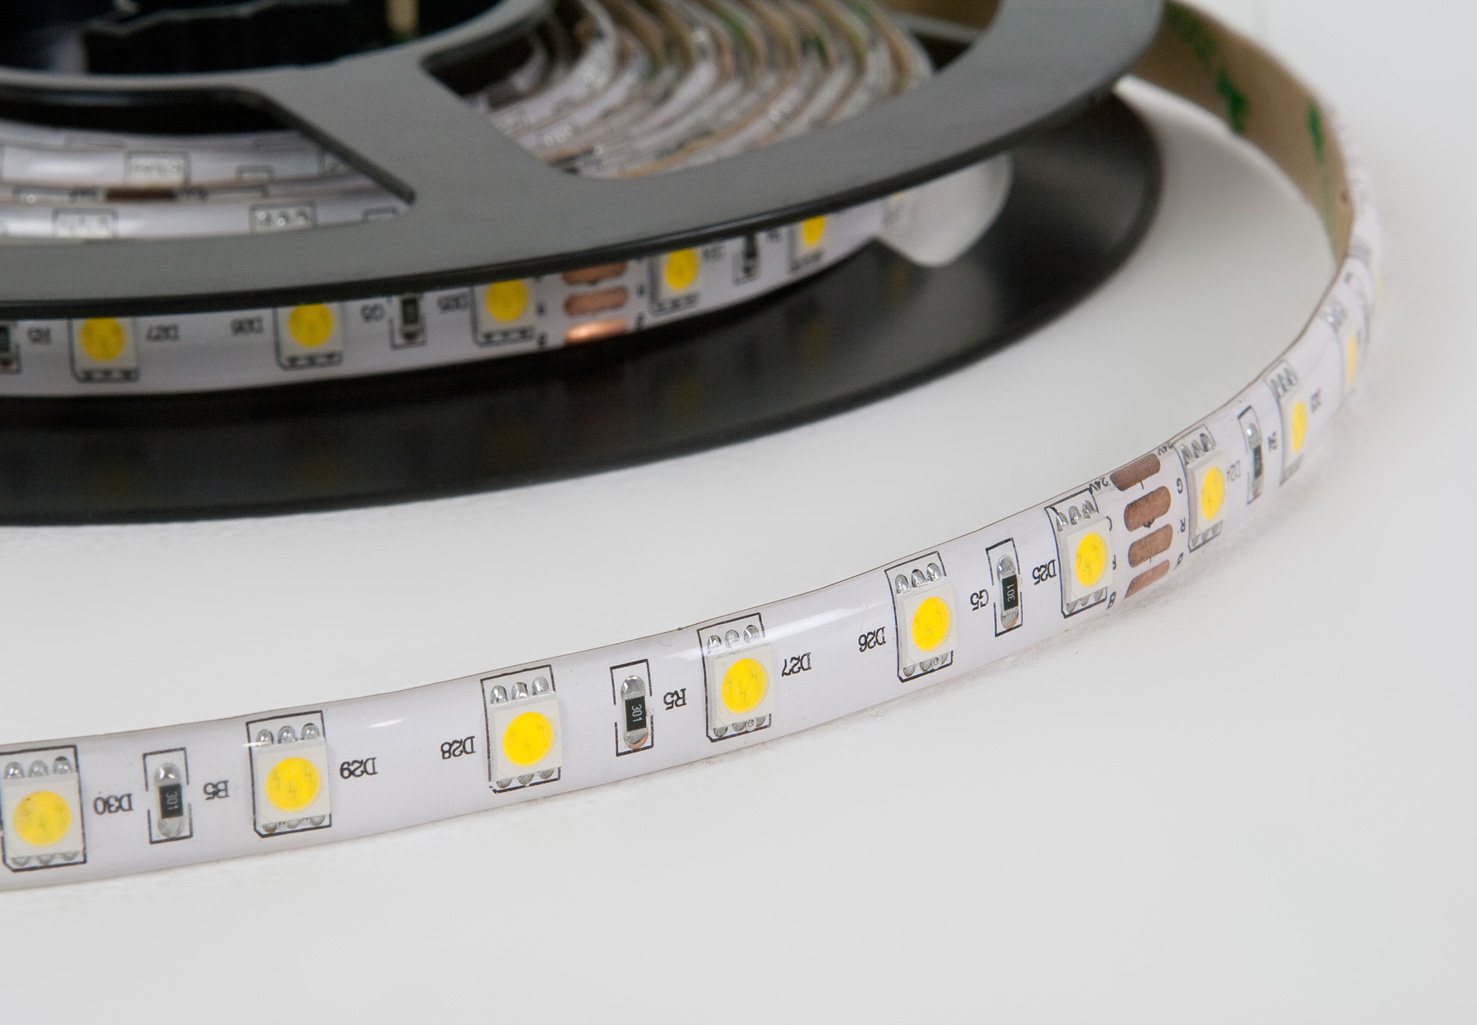 High output LED strip lighting daylight waterproof IP65 24V SMD5050 14.4W : eBay